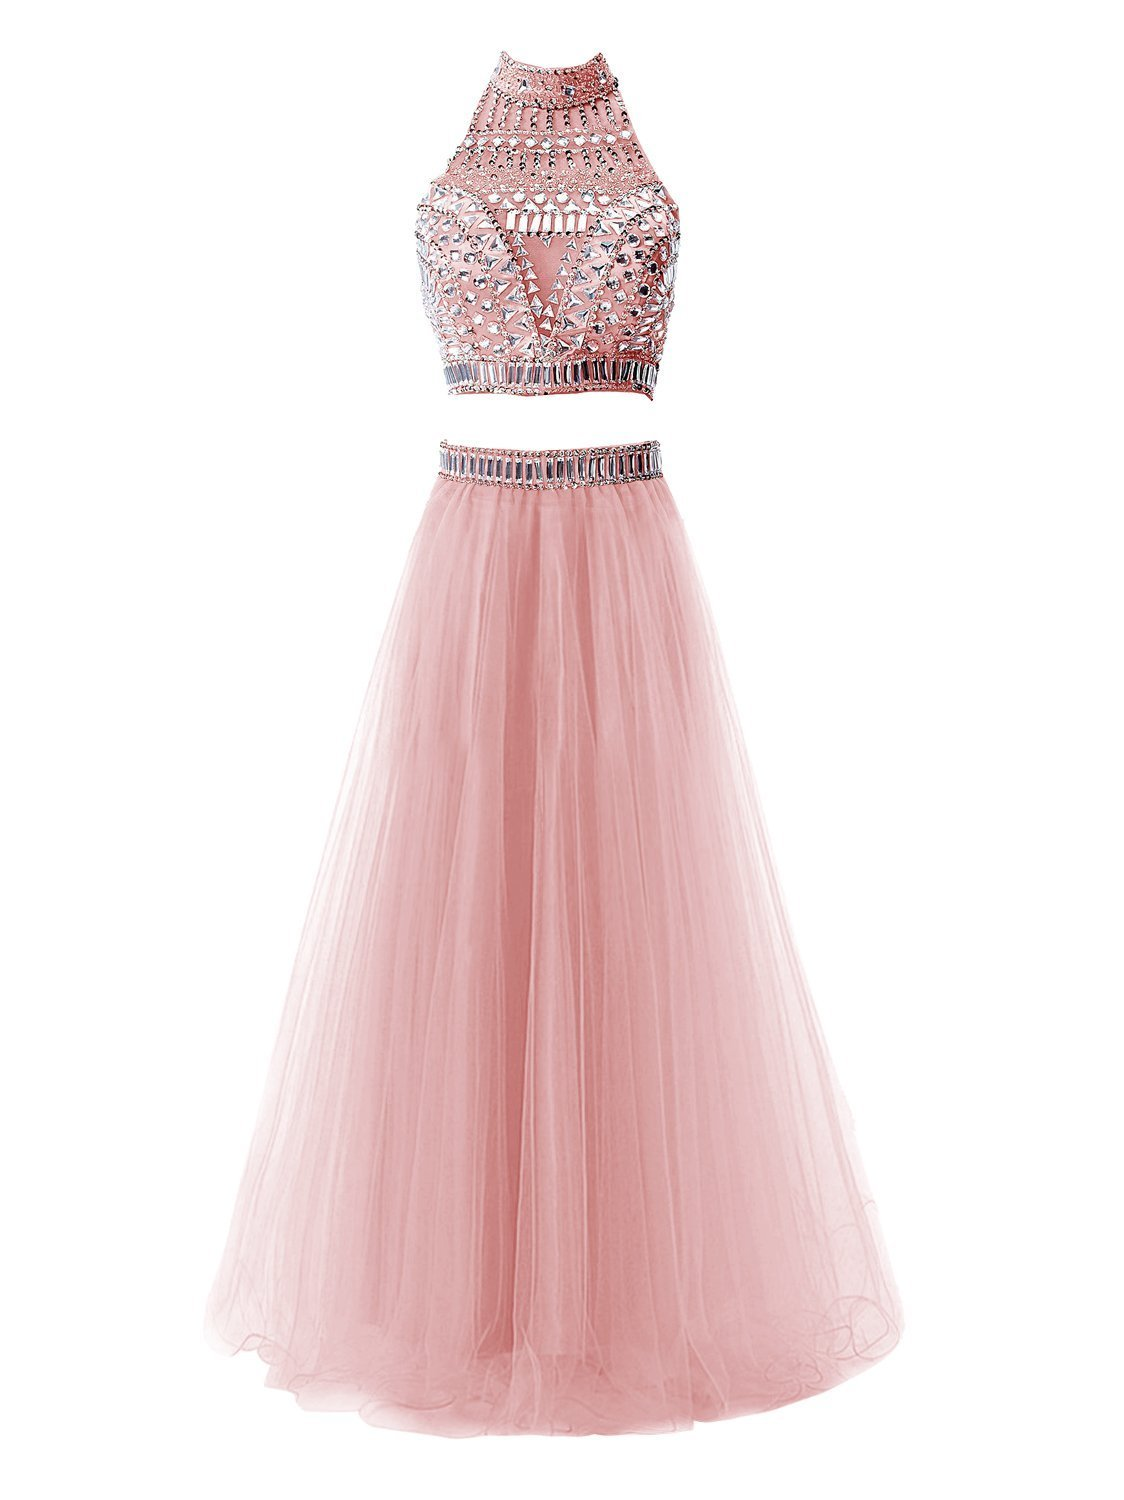 Snowskite Women's Long Halter Two Pieces Tulle Beaded Prom Evening Dress Blush 0